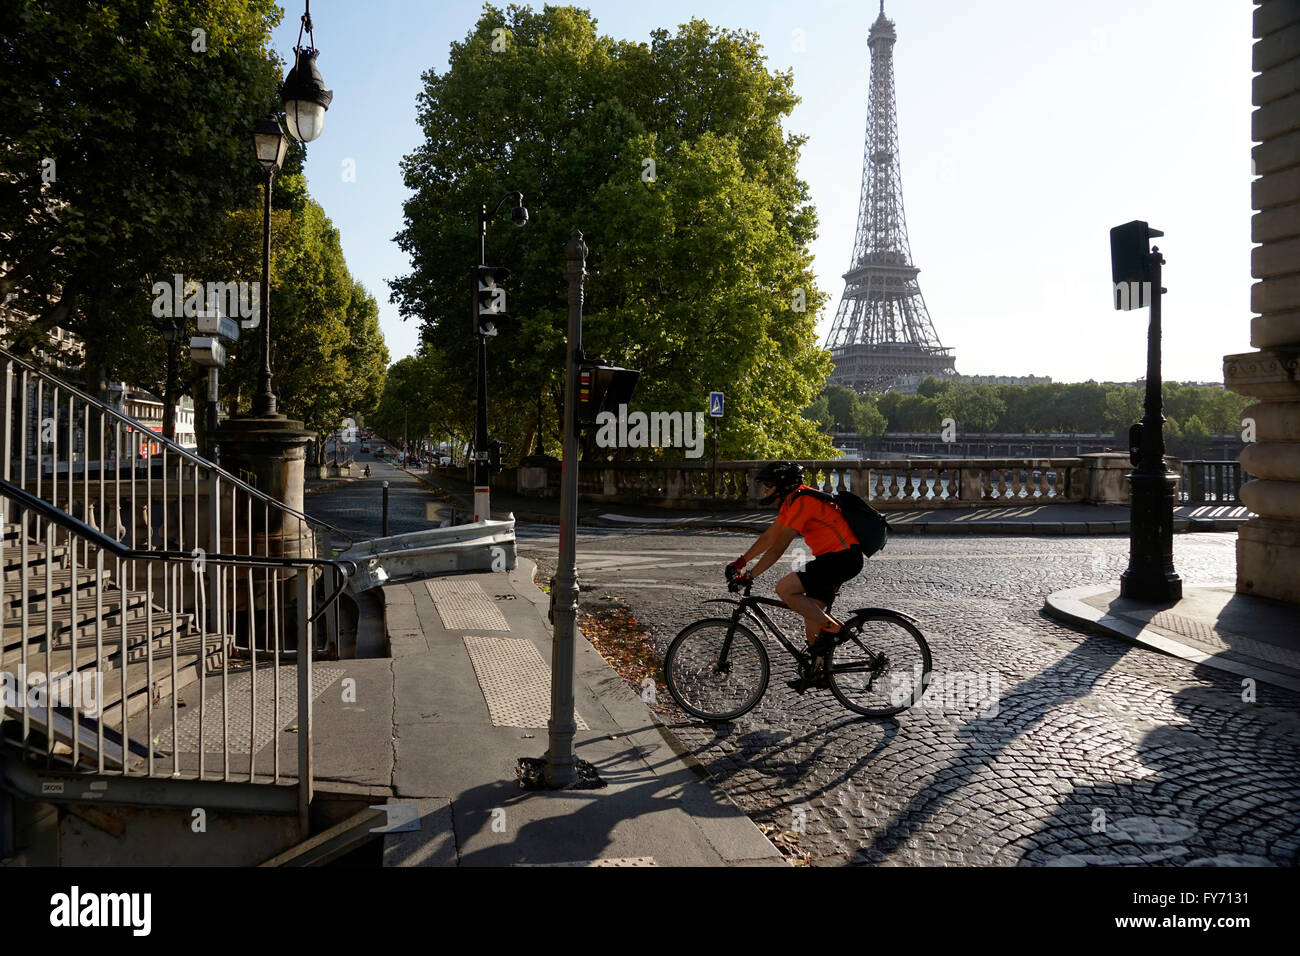 A man riding bicycle on the end of Pont Bir-Hakeim Bridge with Eiffel Tower in the background, Paris, France Stock Photo